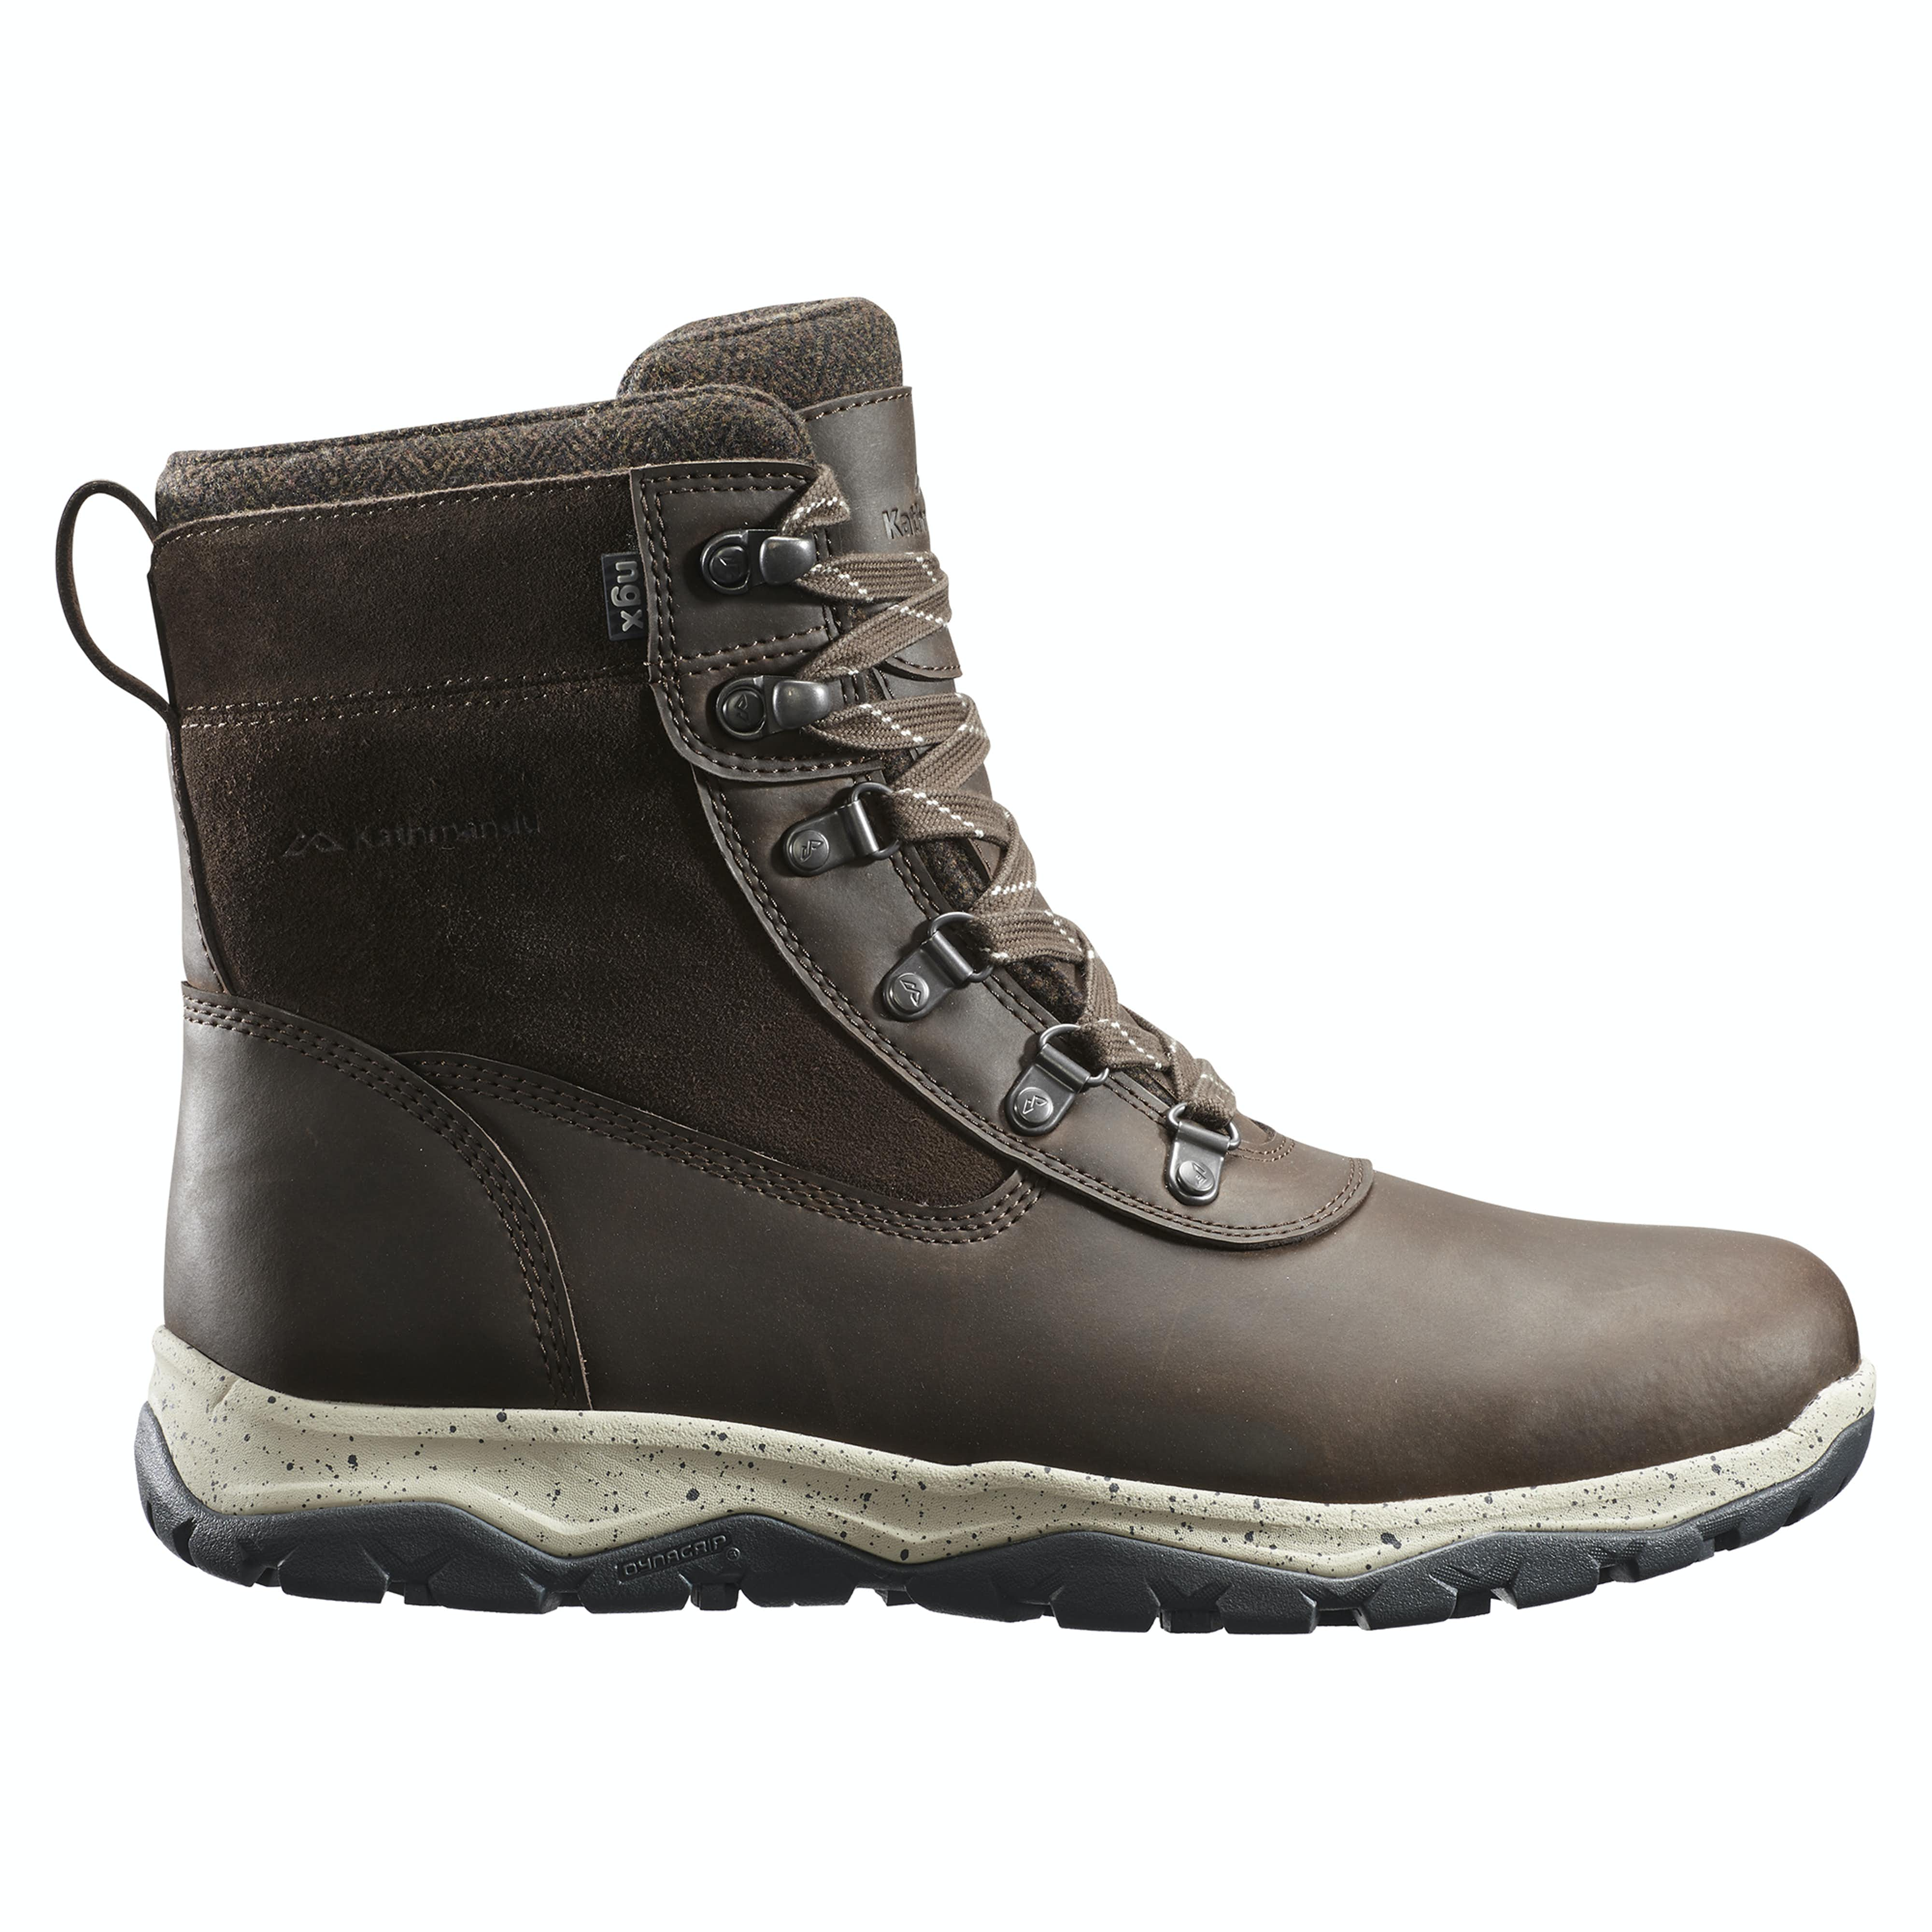 aed0a4b02d2 Hiking Boots for Men | Waterproof Mens Hiking Boots for Sale | AU